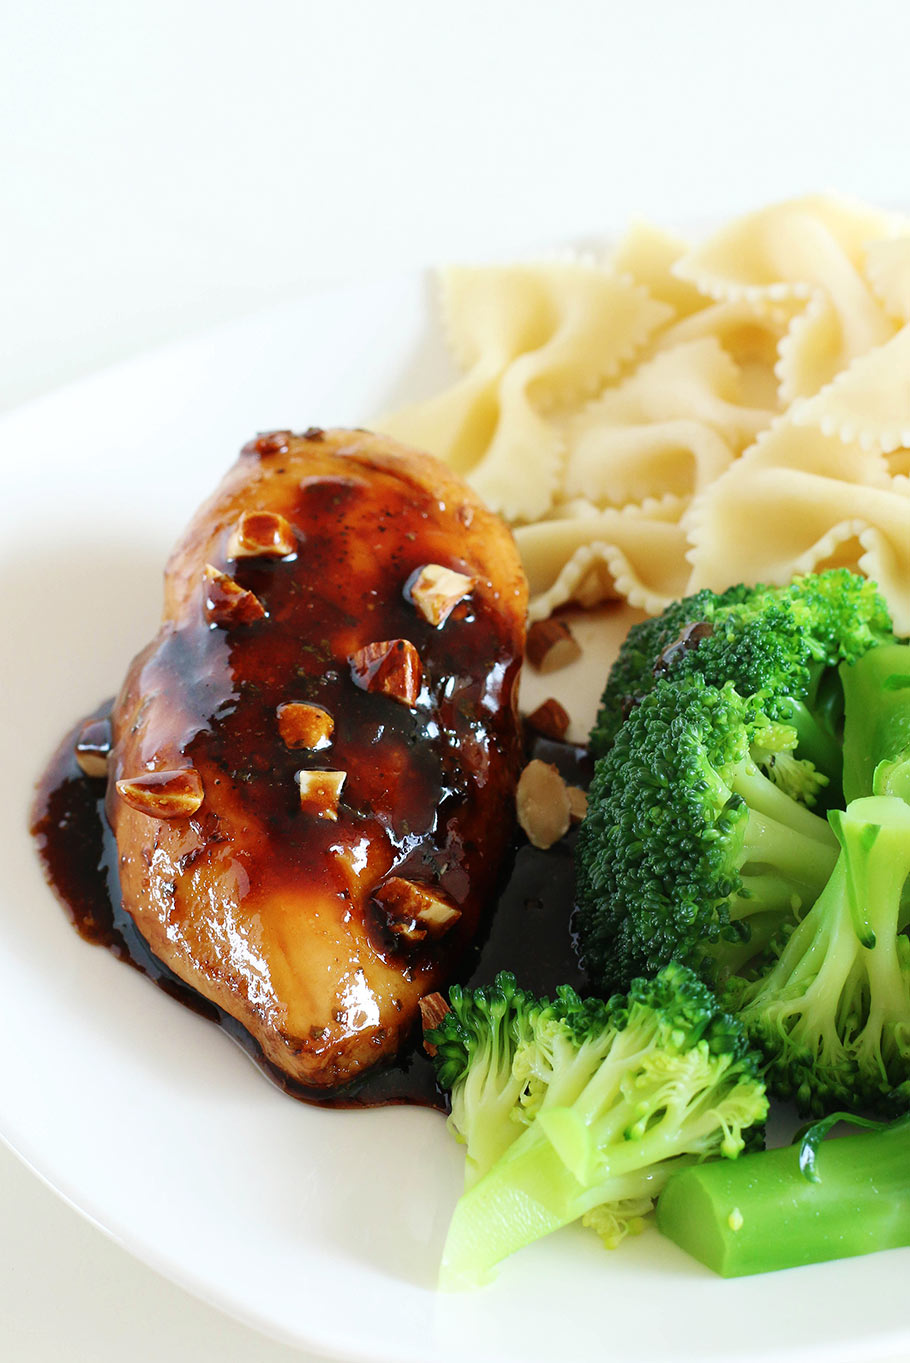 20-minute skillet honey balsamic soy sauce chicken recipe with a few everyday ingredients in your pantry. Who can resist golden chicken breast with sticky sweet glaze? YUM! - Eugenie Kitchen